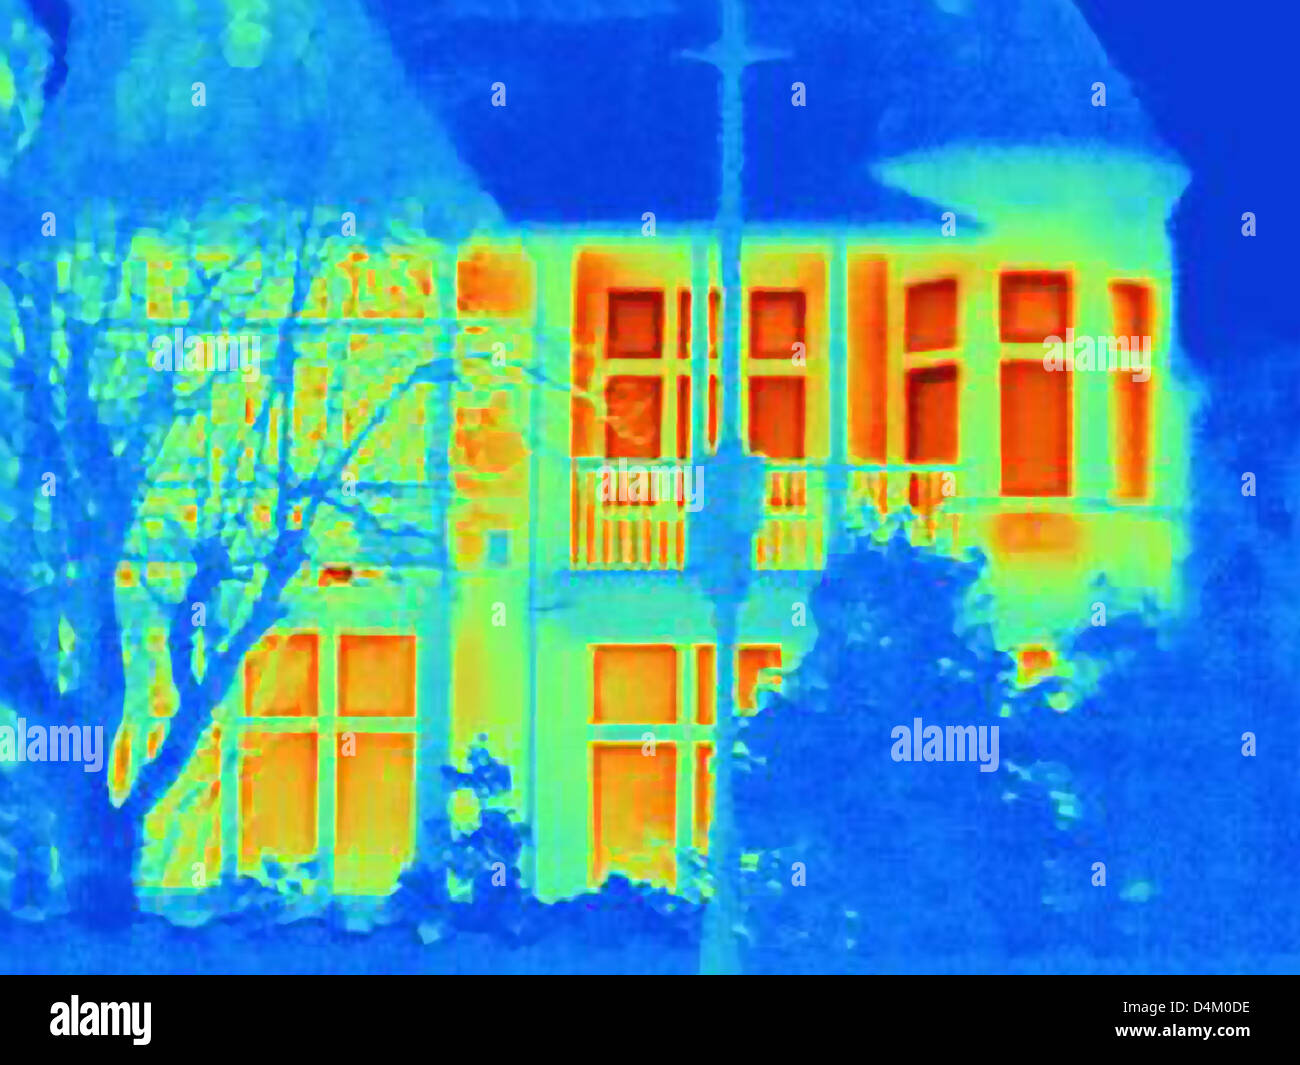 Thermal image of house on city street - Stock Image